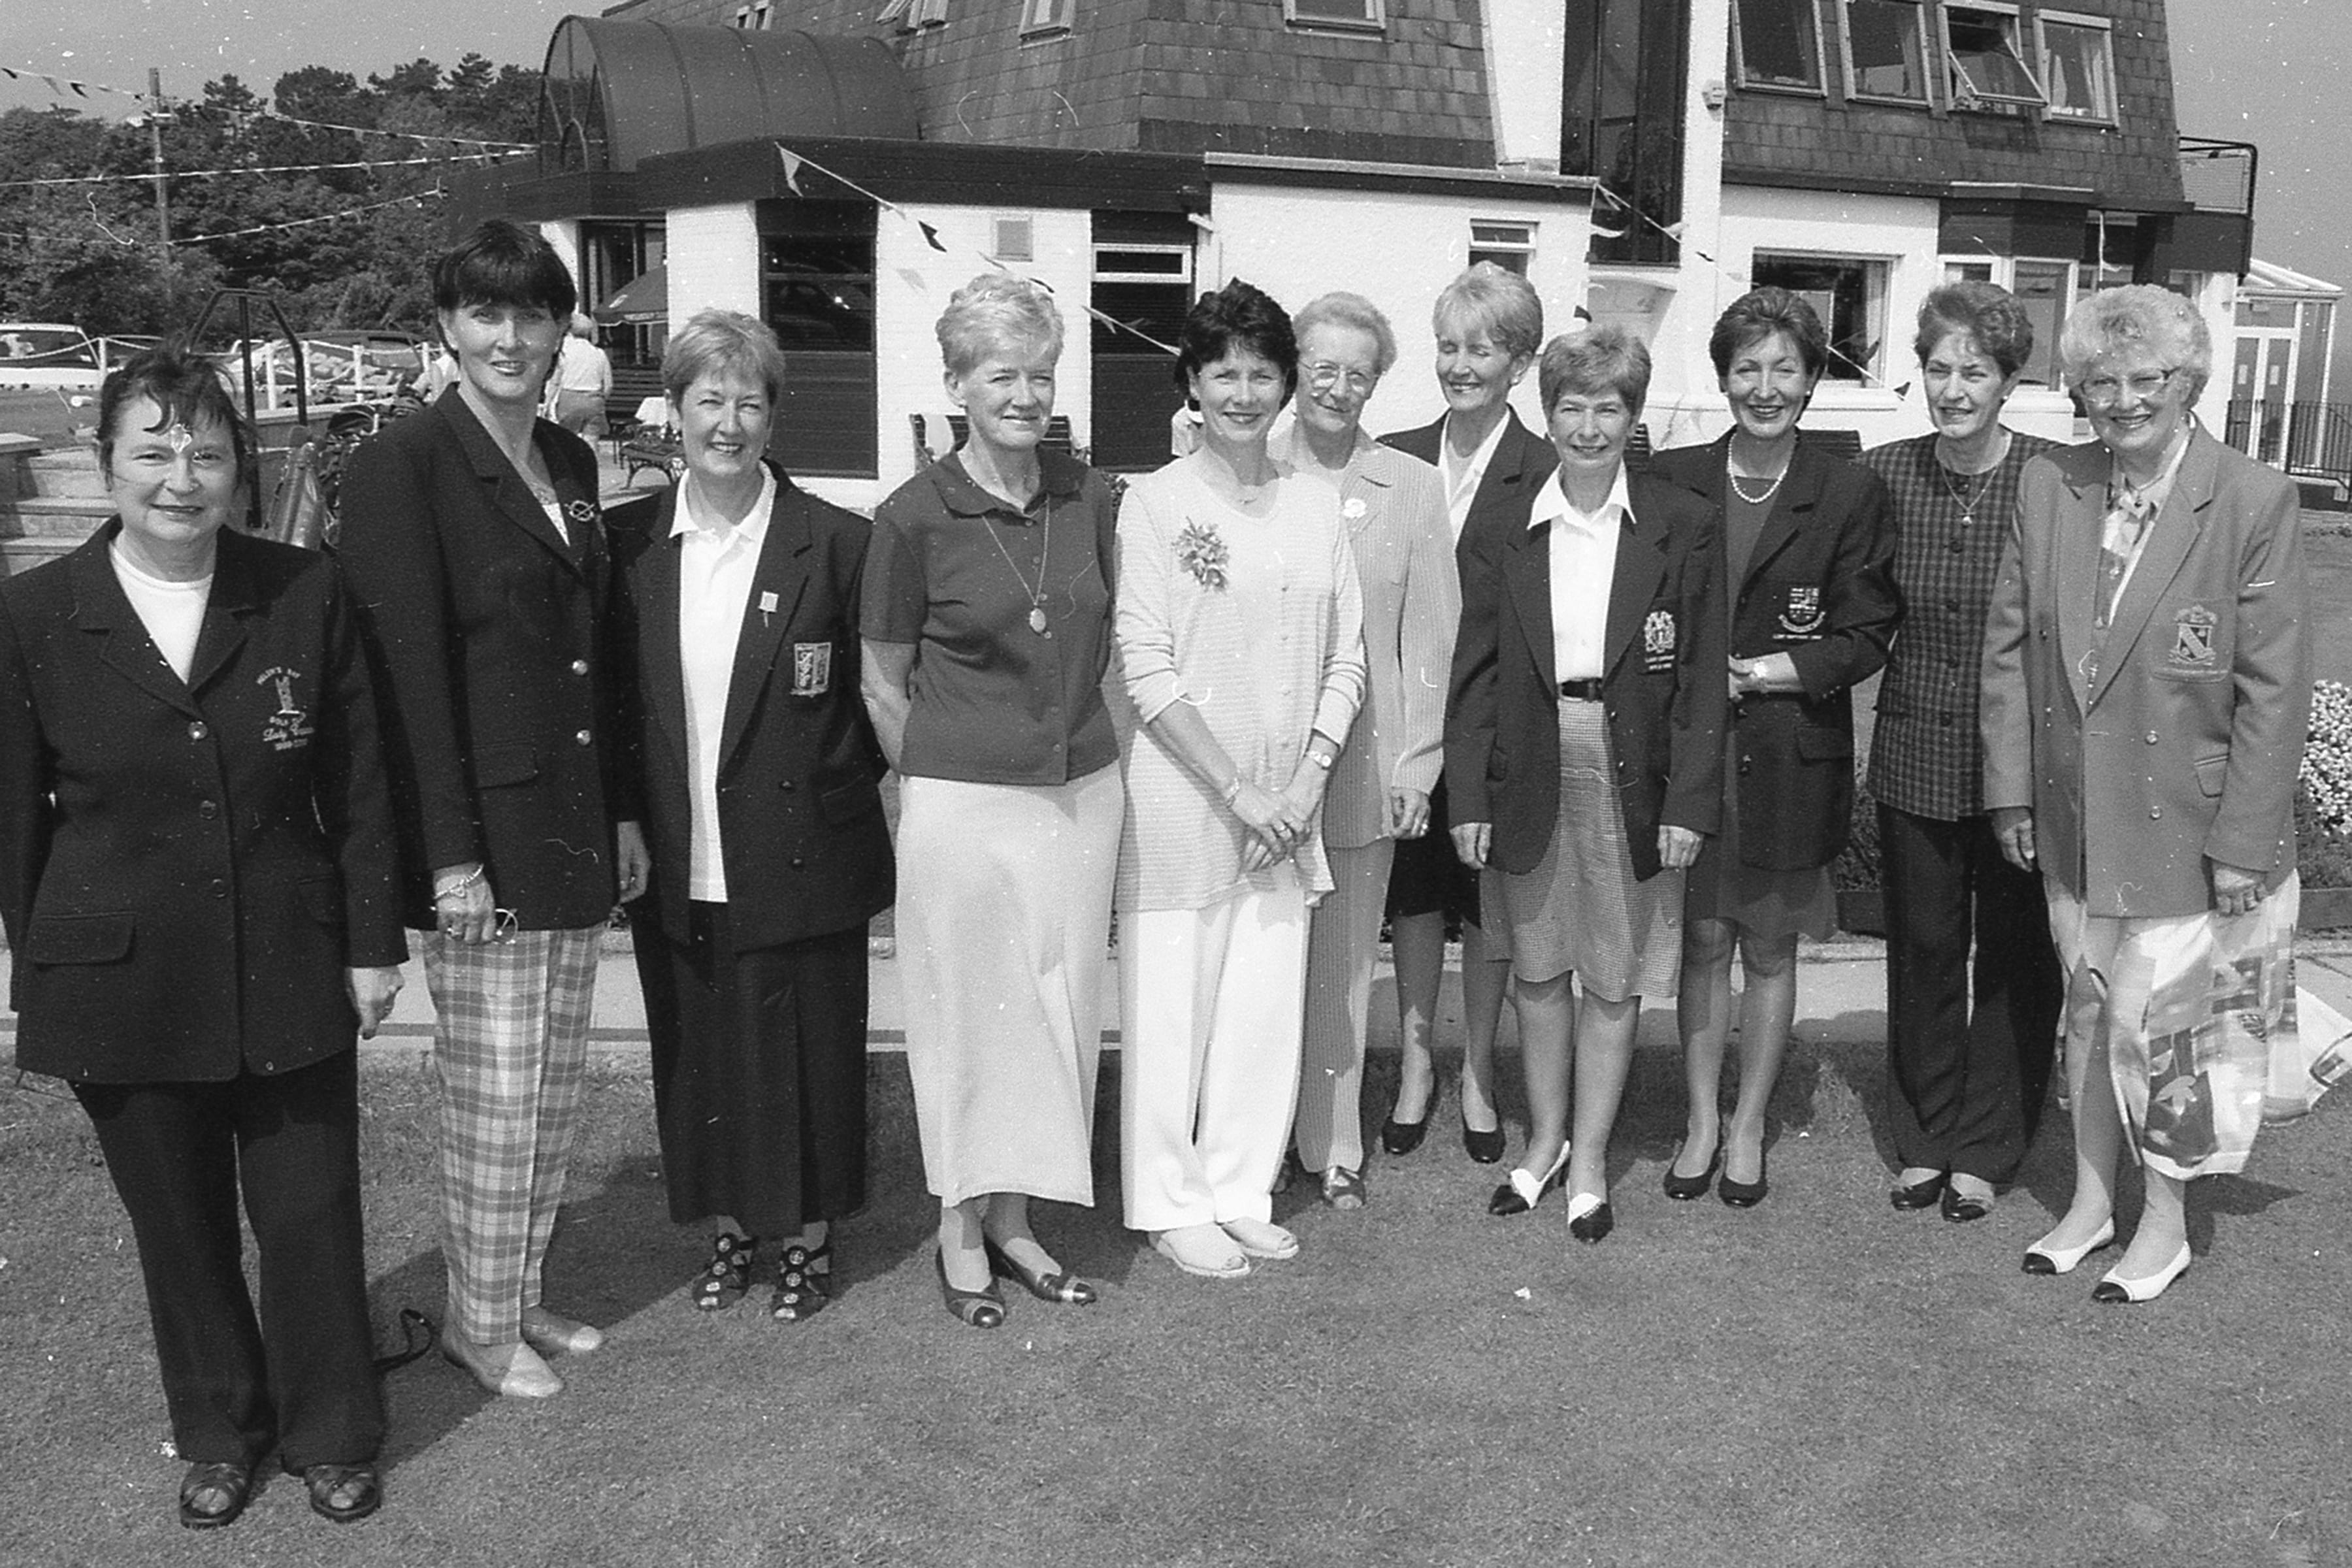 Spectator pictures from past – 1999